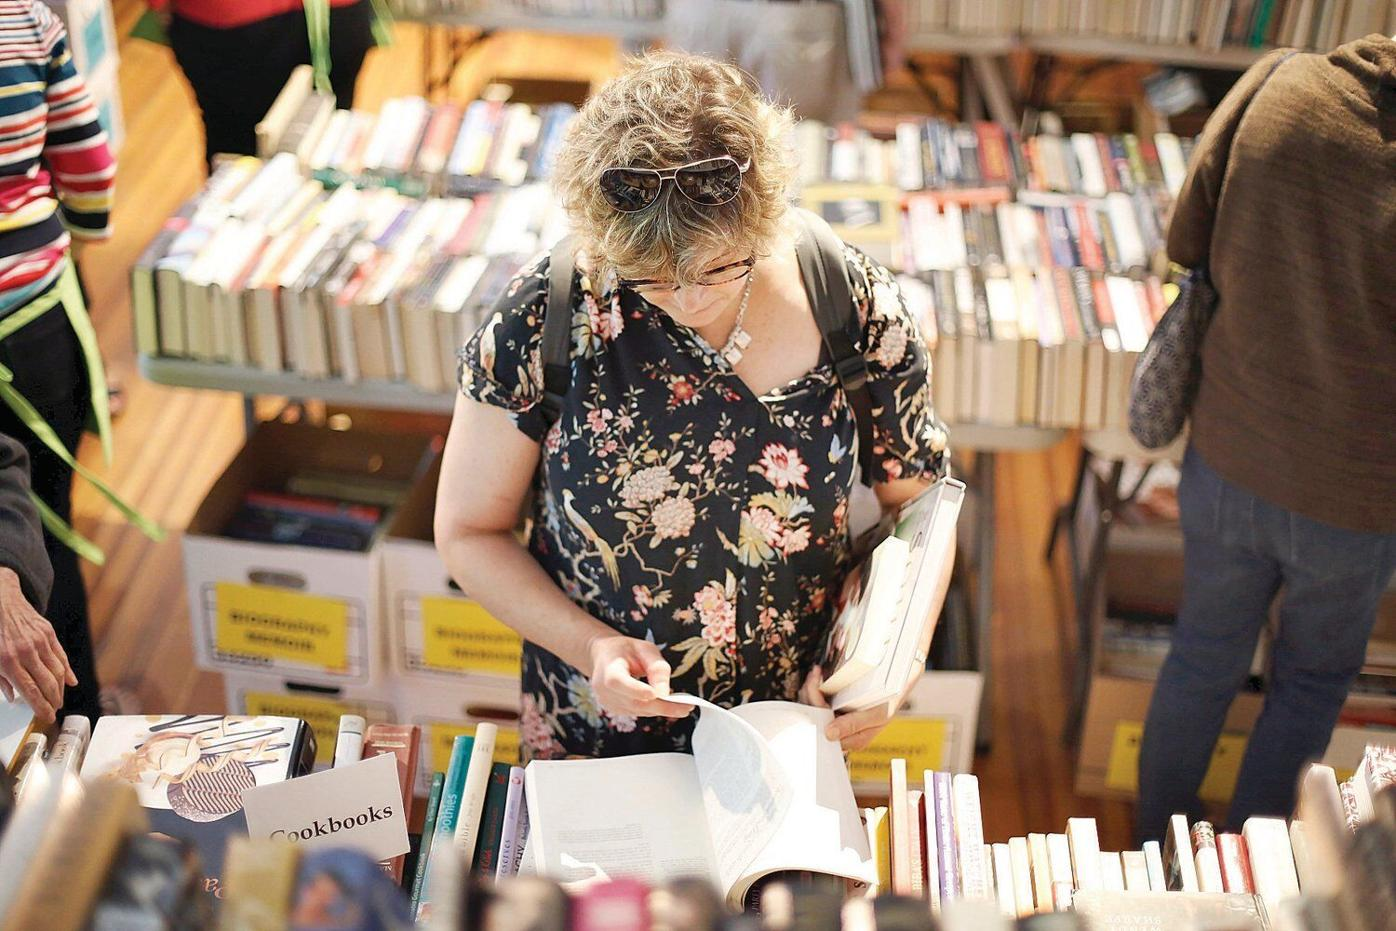 Spencertown festival speaks volumes to the allure of books